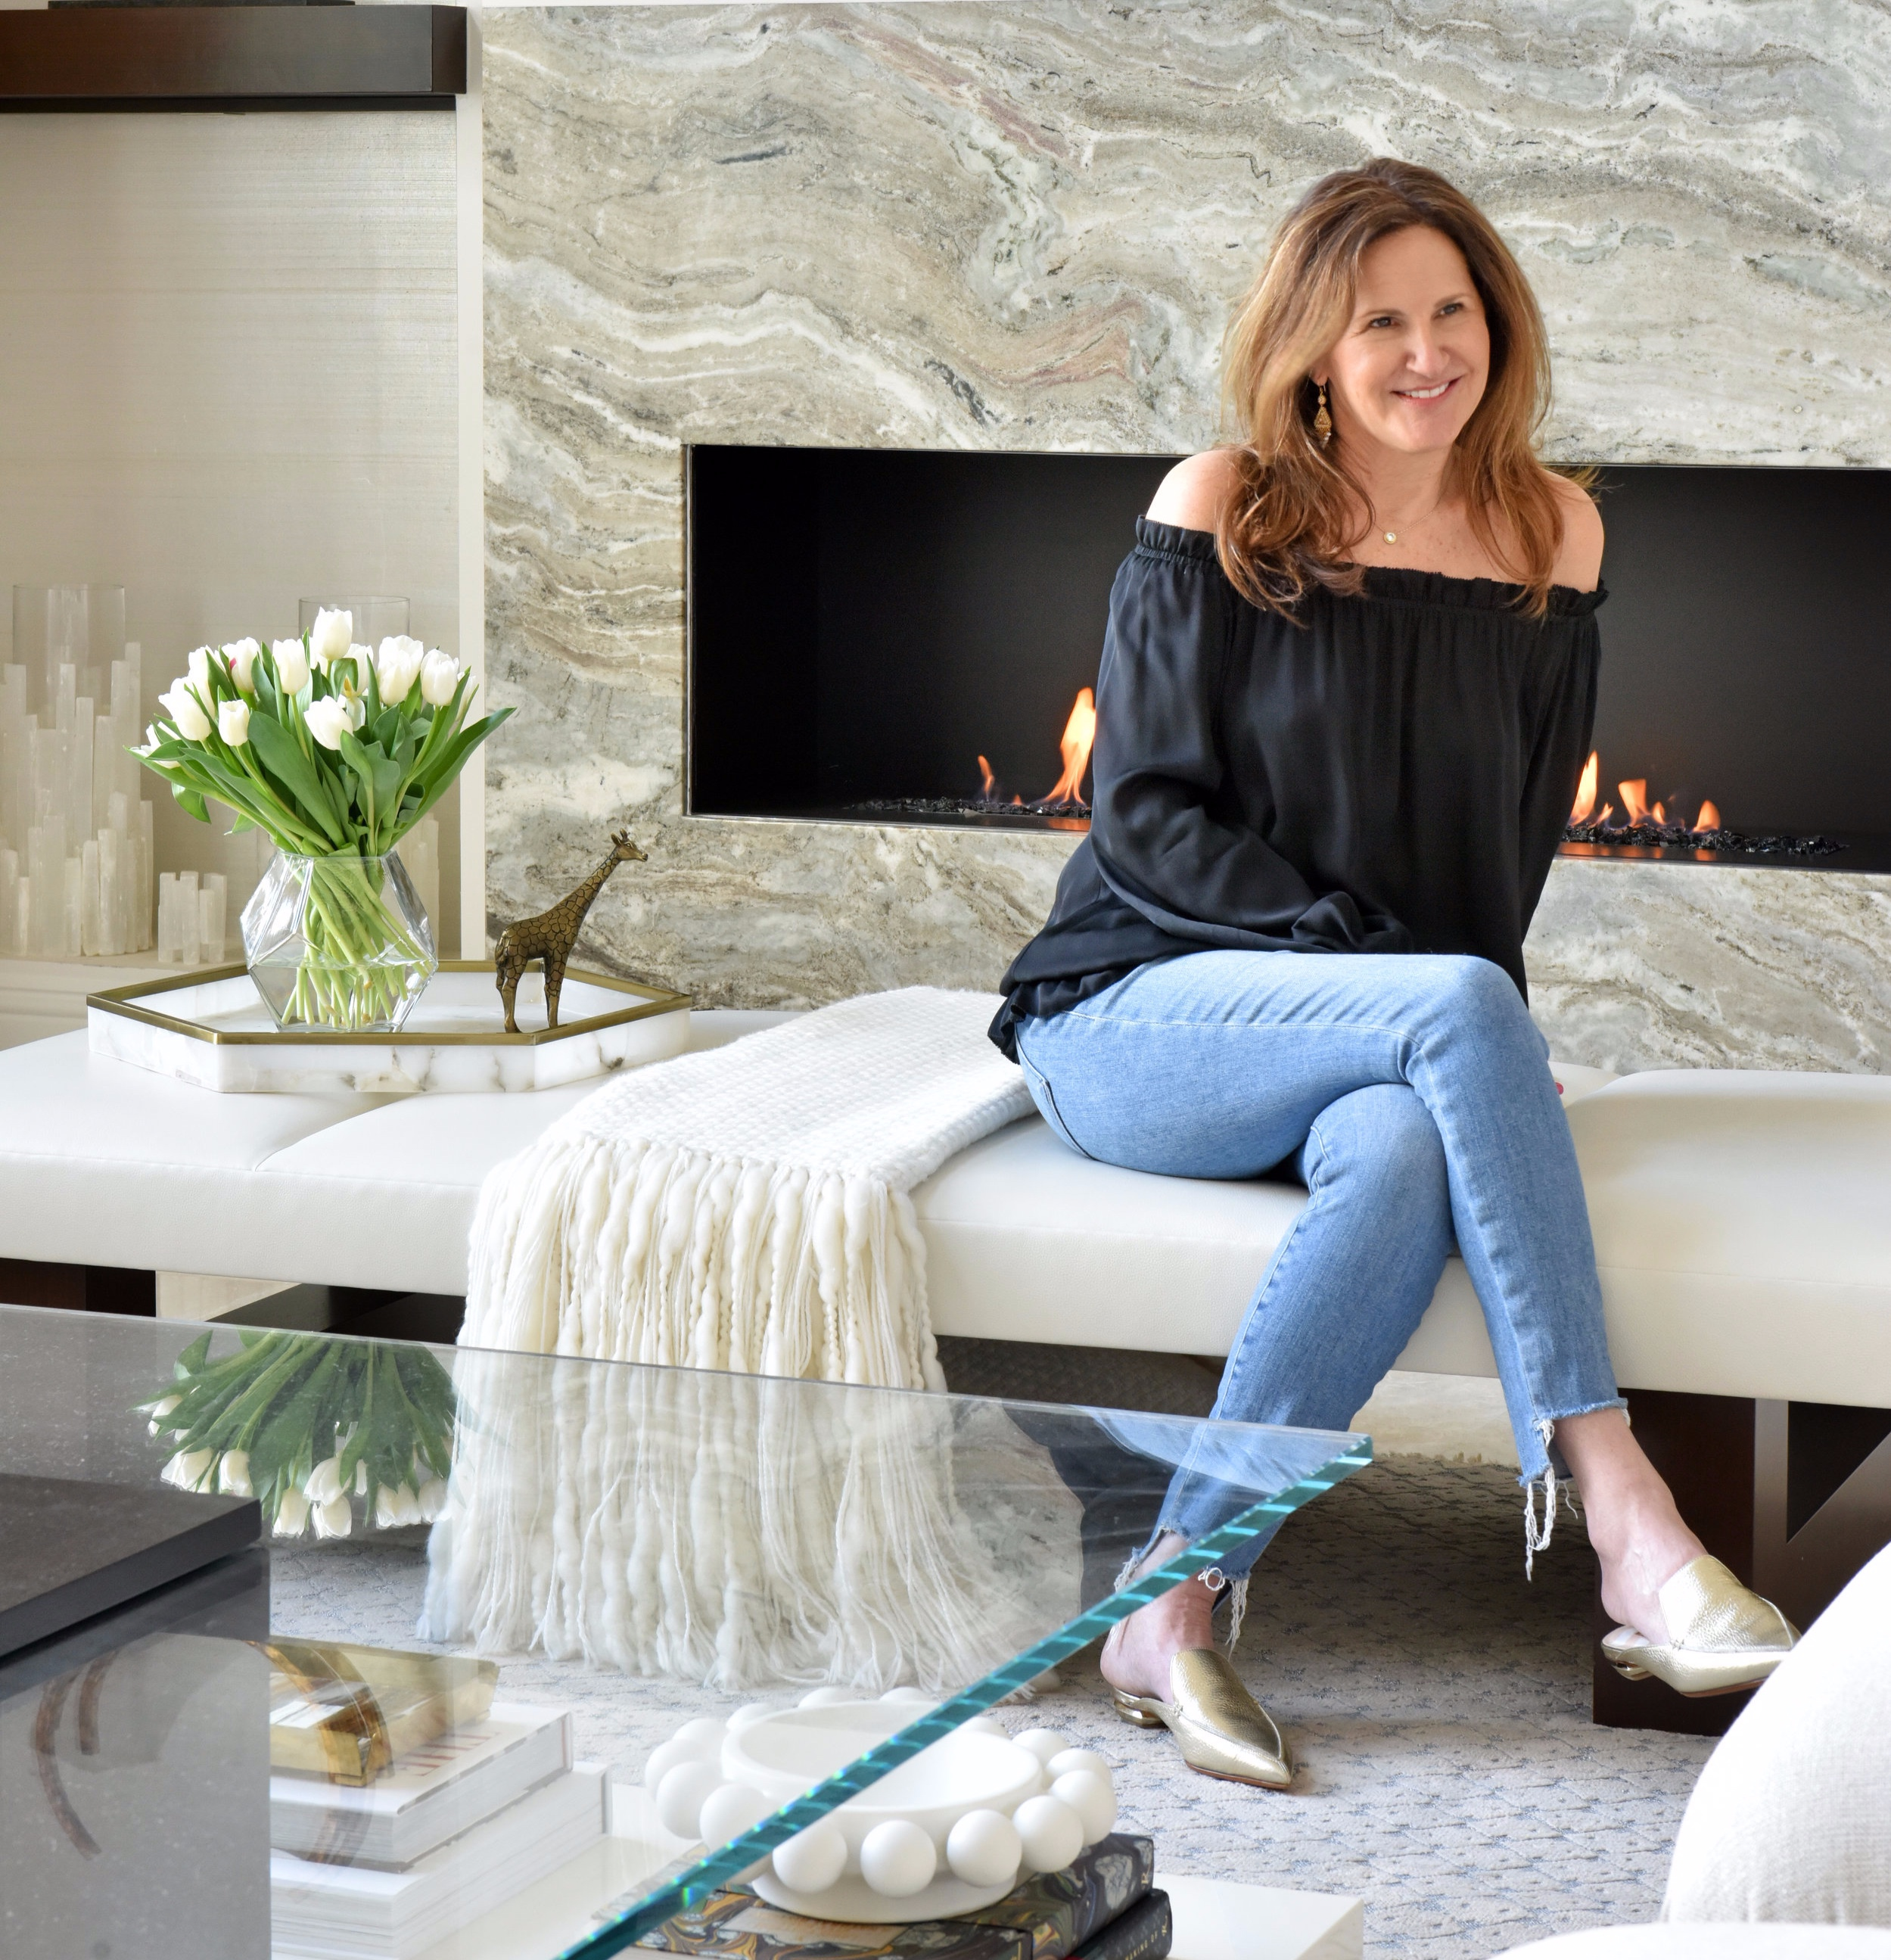 Wendy Hammerman is the founder and lead designer at wlh Interiors, her work ranges from New York City penthouses to turn key florida homes on the INTER-COASTAL. Through out her 20 years of experience, she has developed her own SIGNATURE and sought after stylE. Wendy Currently resides in New YoRK with her family. - INNOVATIVE DESIGN